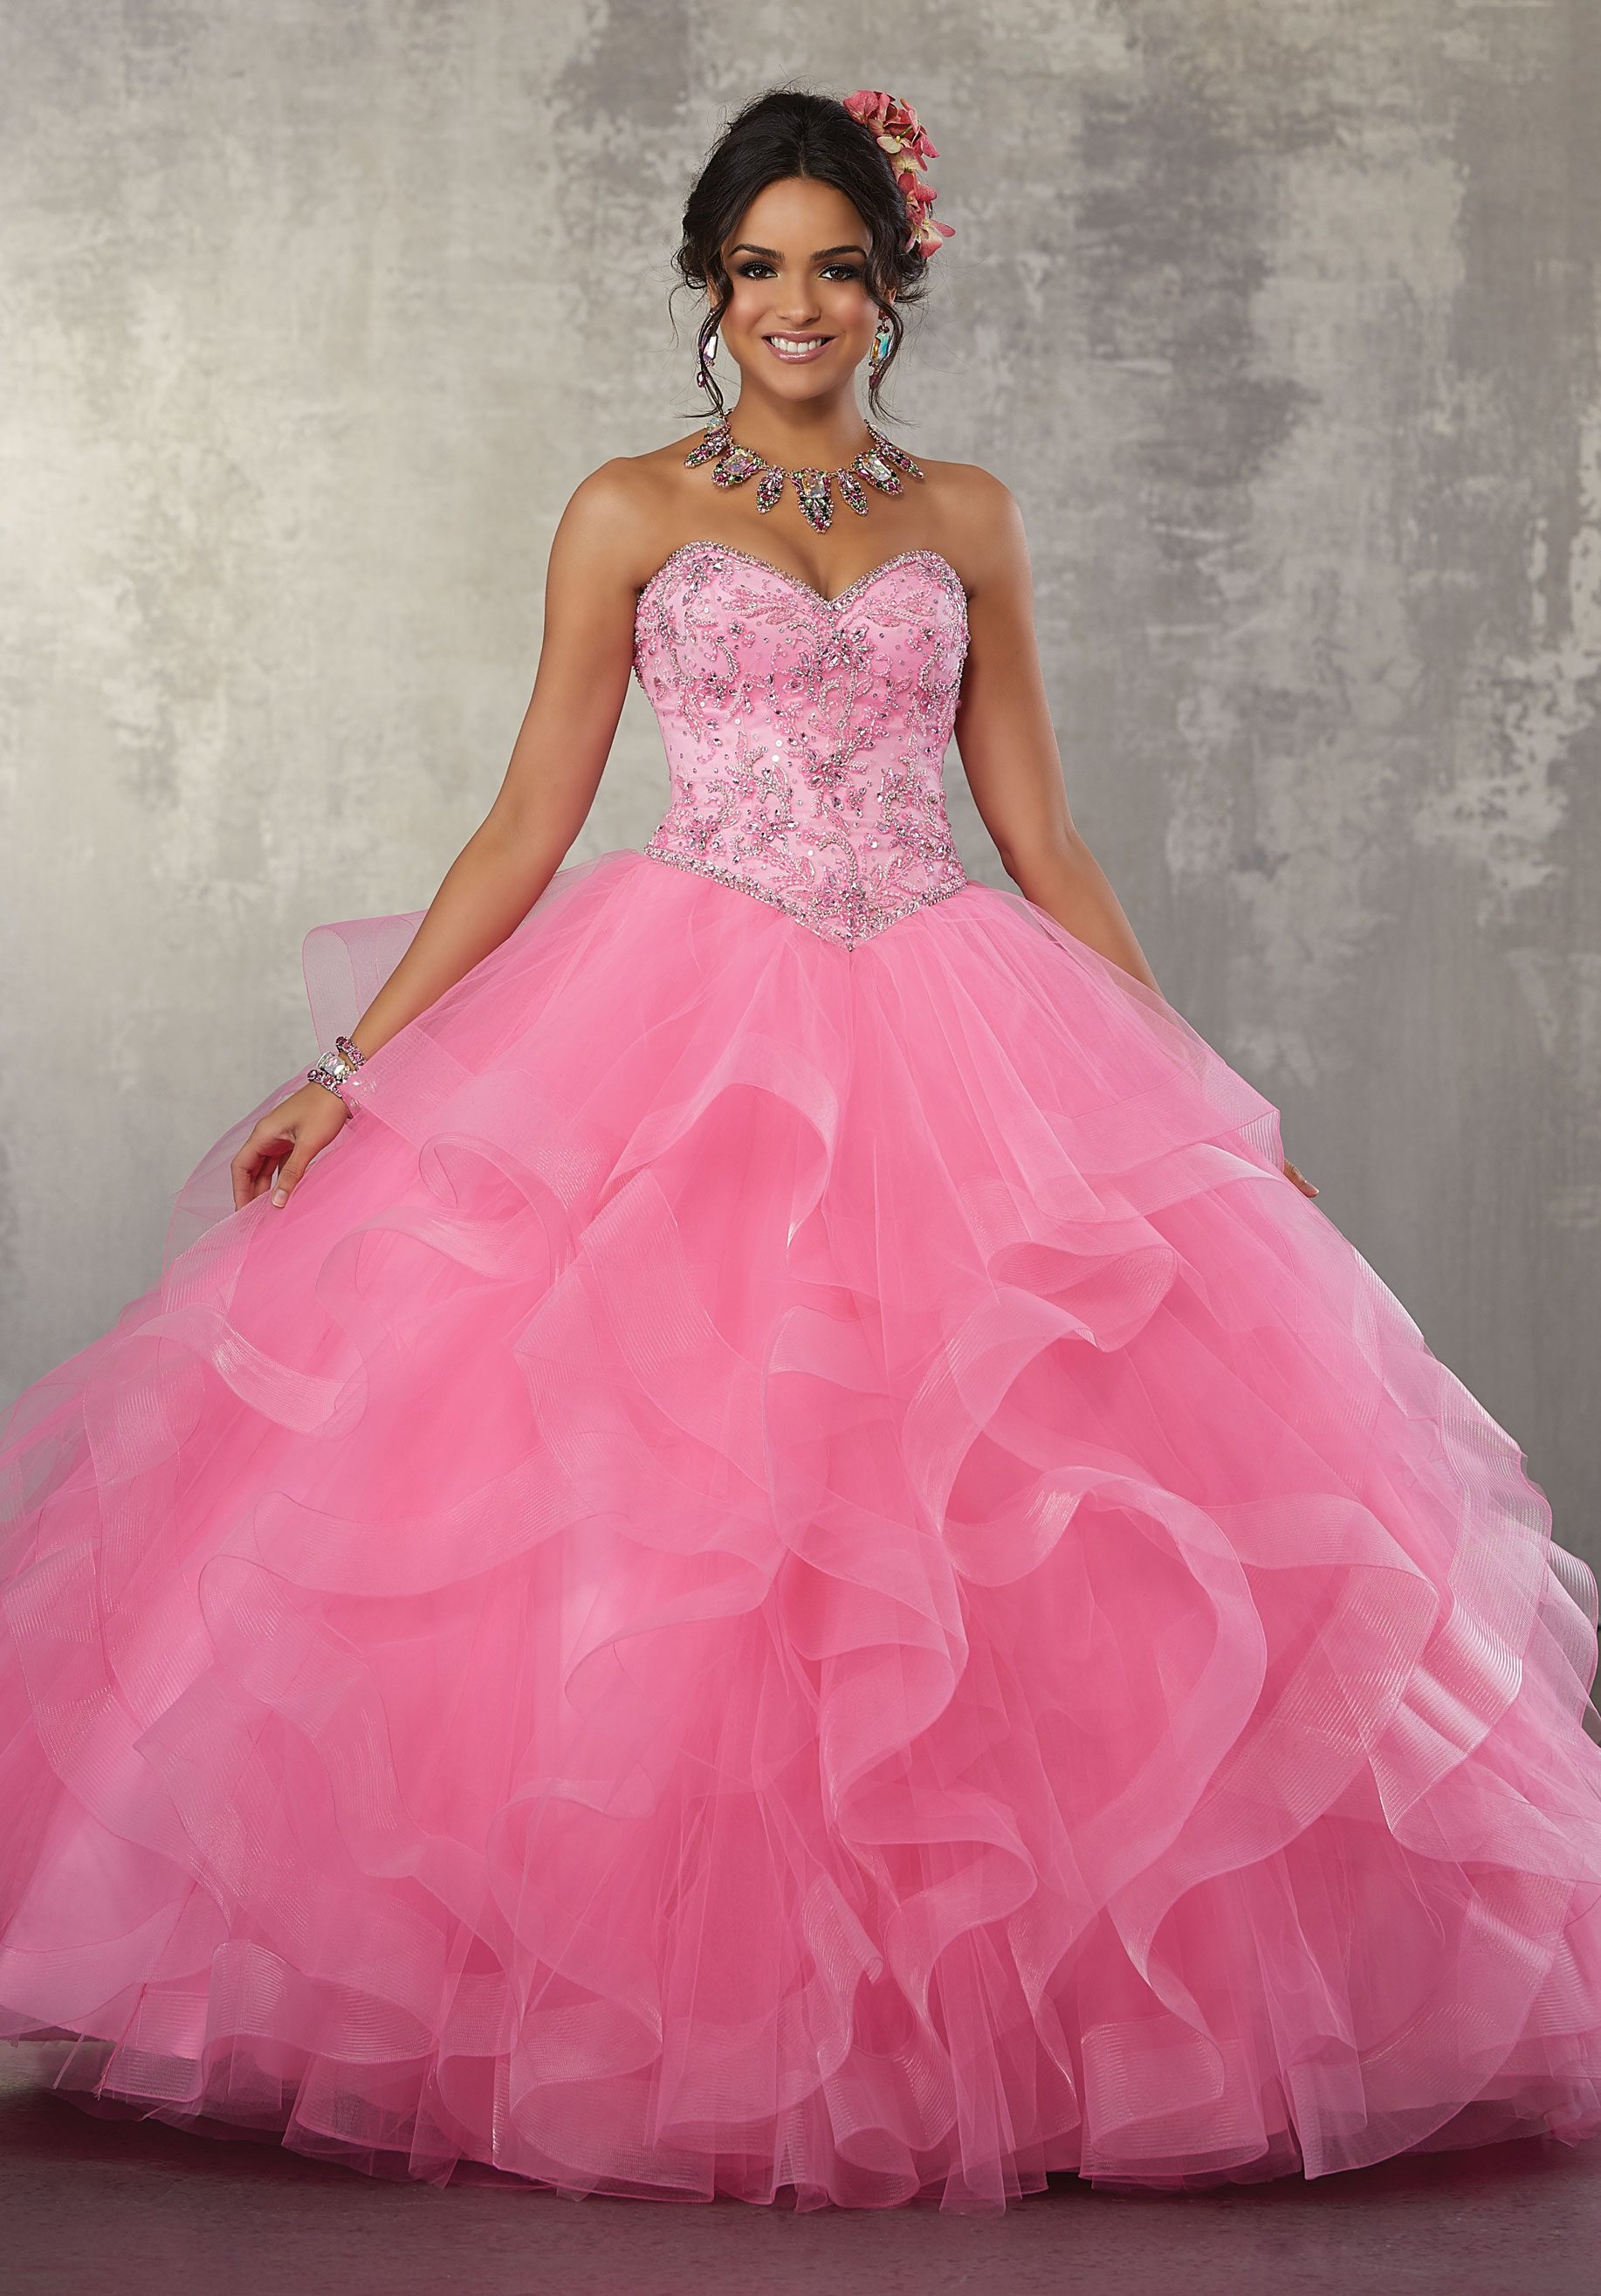 pink and blue wedding dresses photo - 1